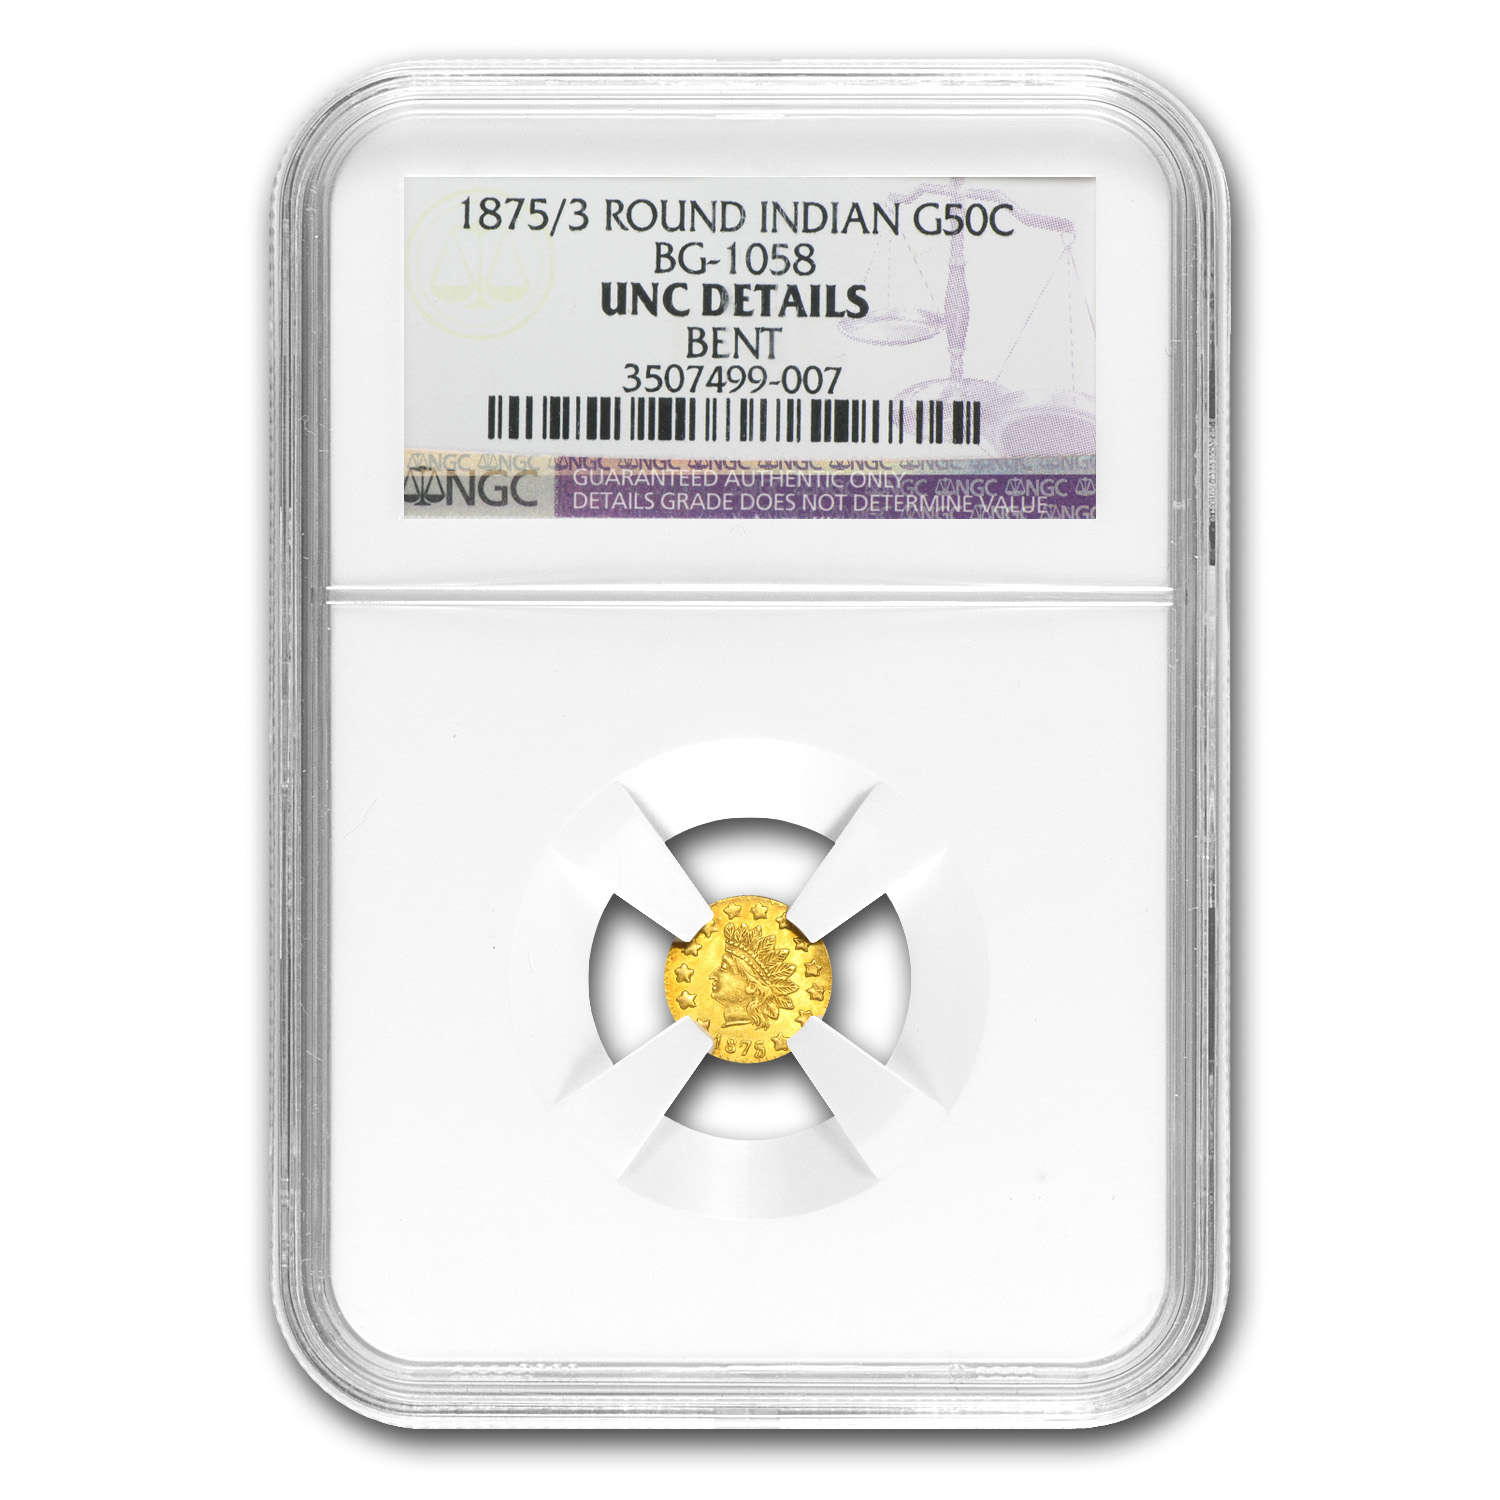 1875/3 BG-1058 Indian Round 50 Cent Gold Unc Details NGC (Bent)